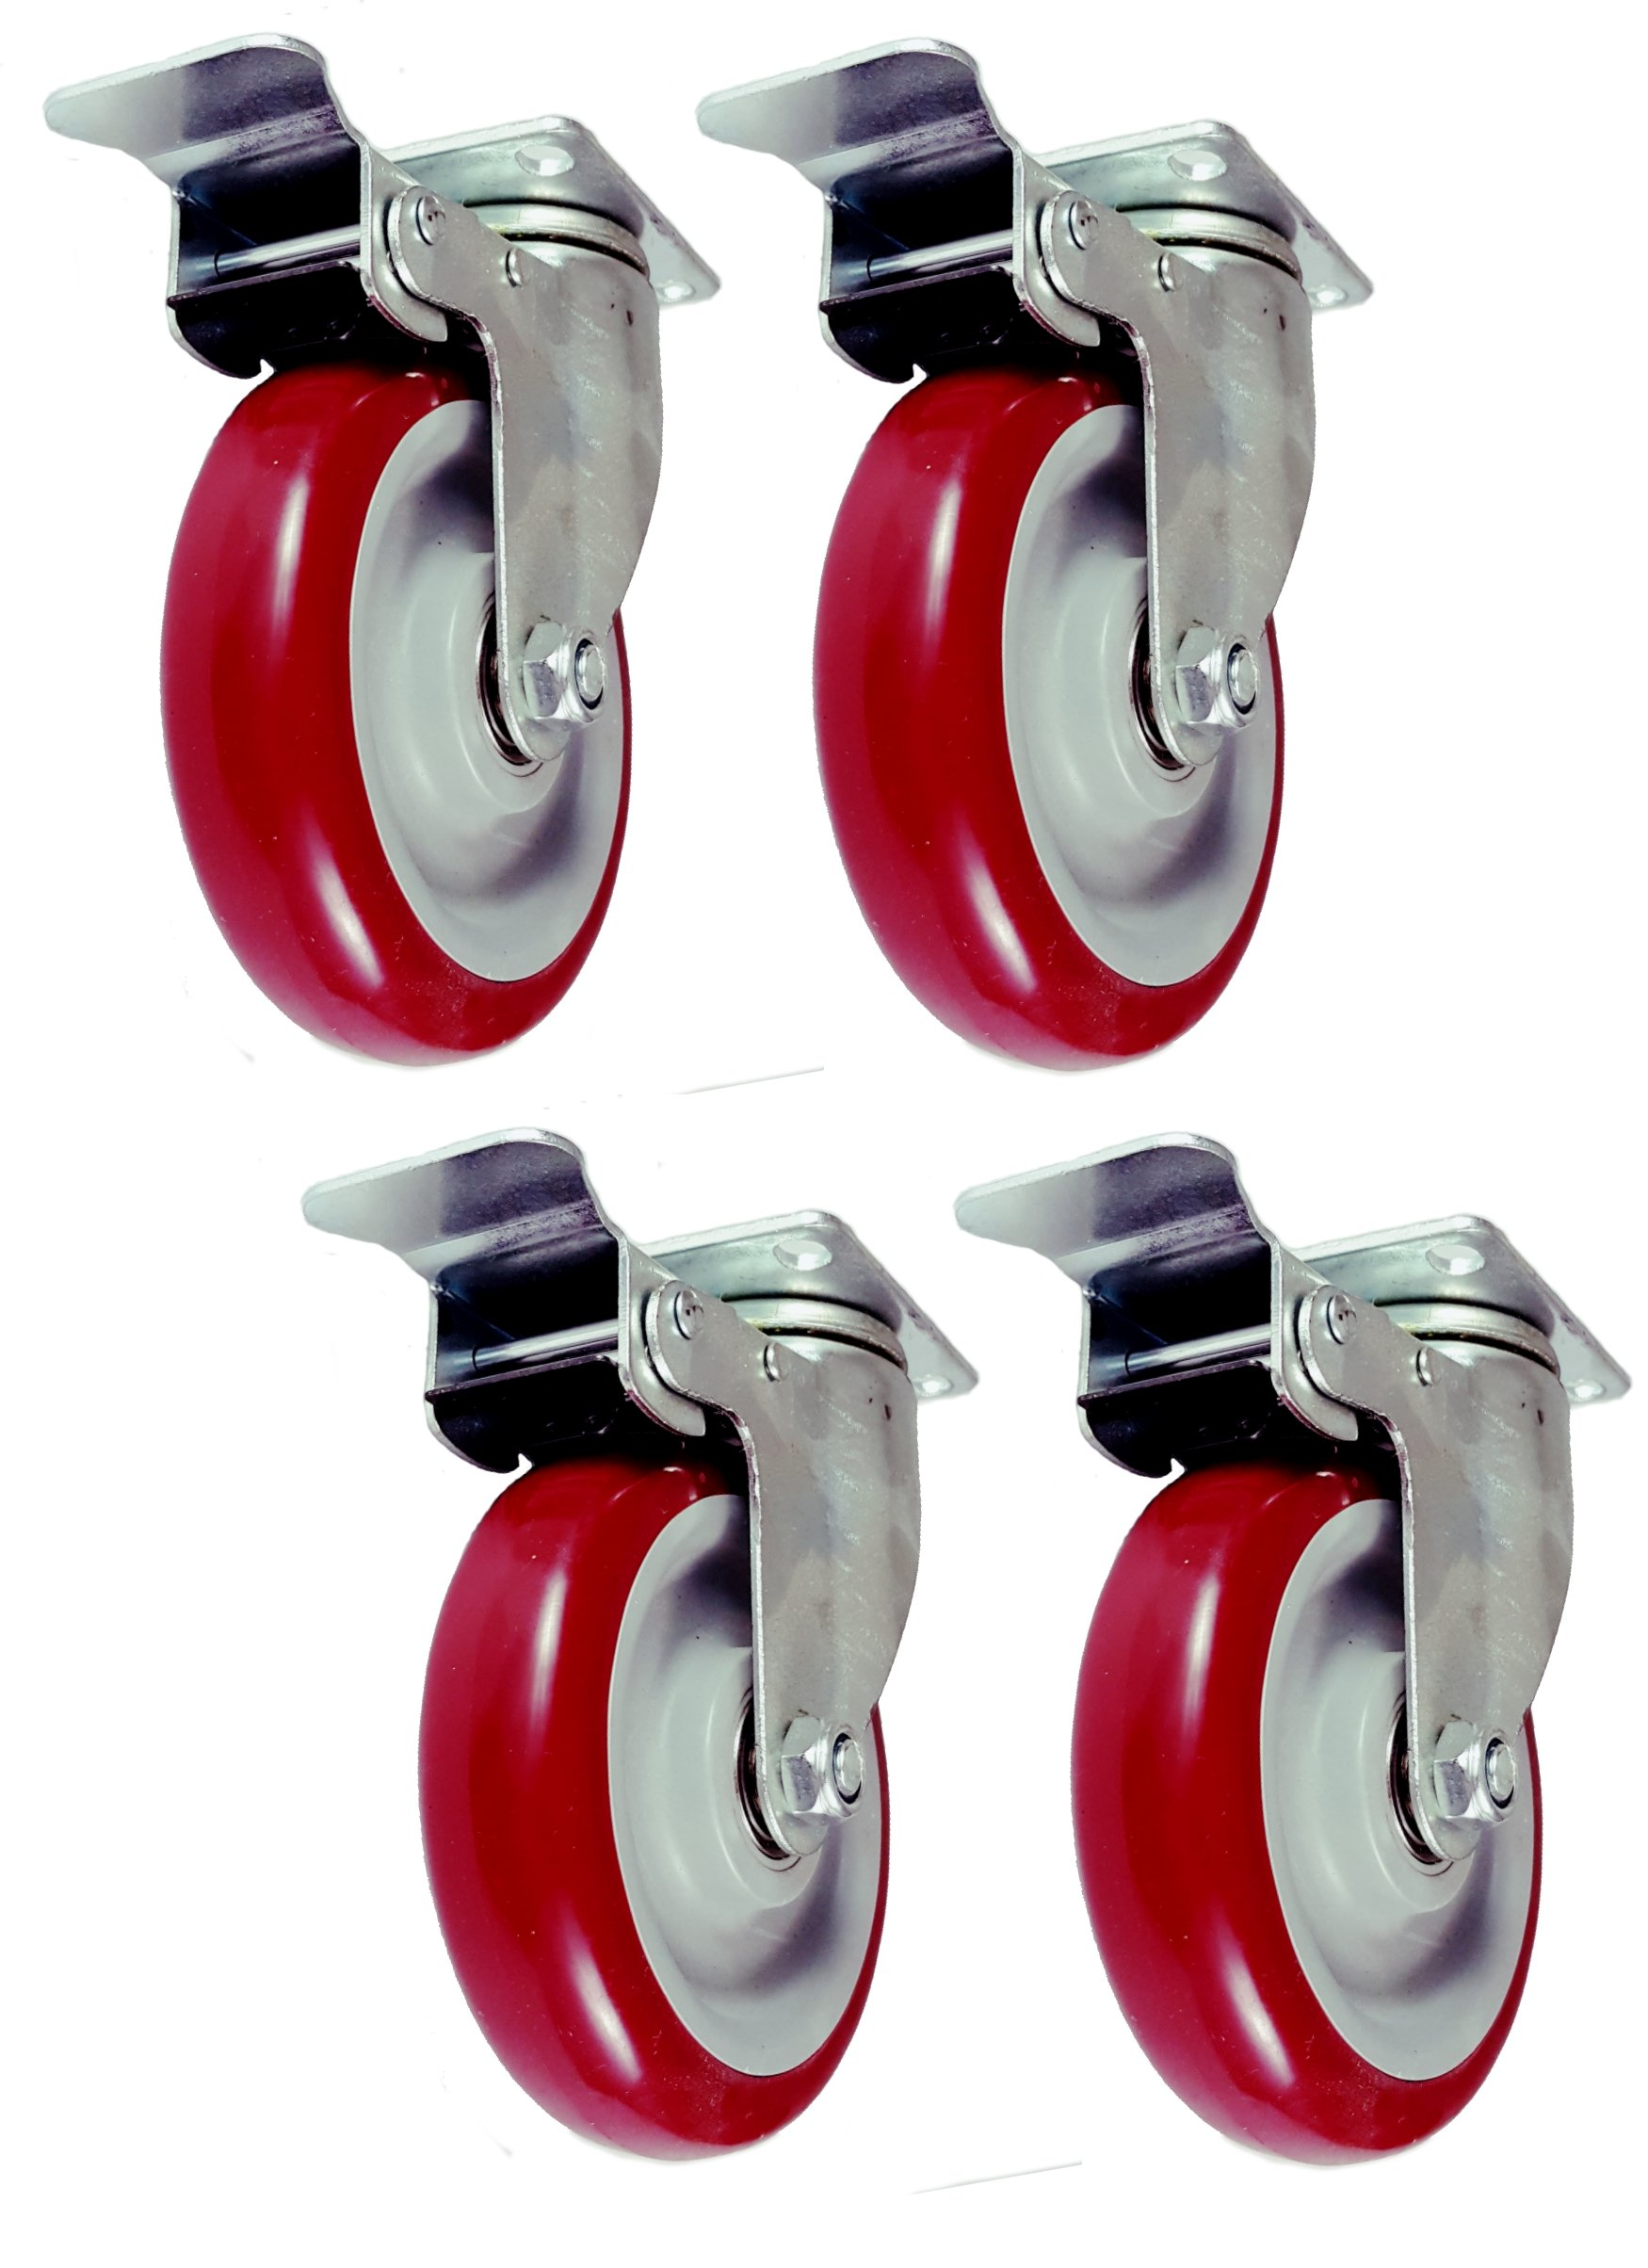 Online Best Service Caster Wheels Swivel Plate w/ Brake Casters On Red Polyurethane Wheels (5 inch with Brake)